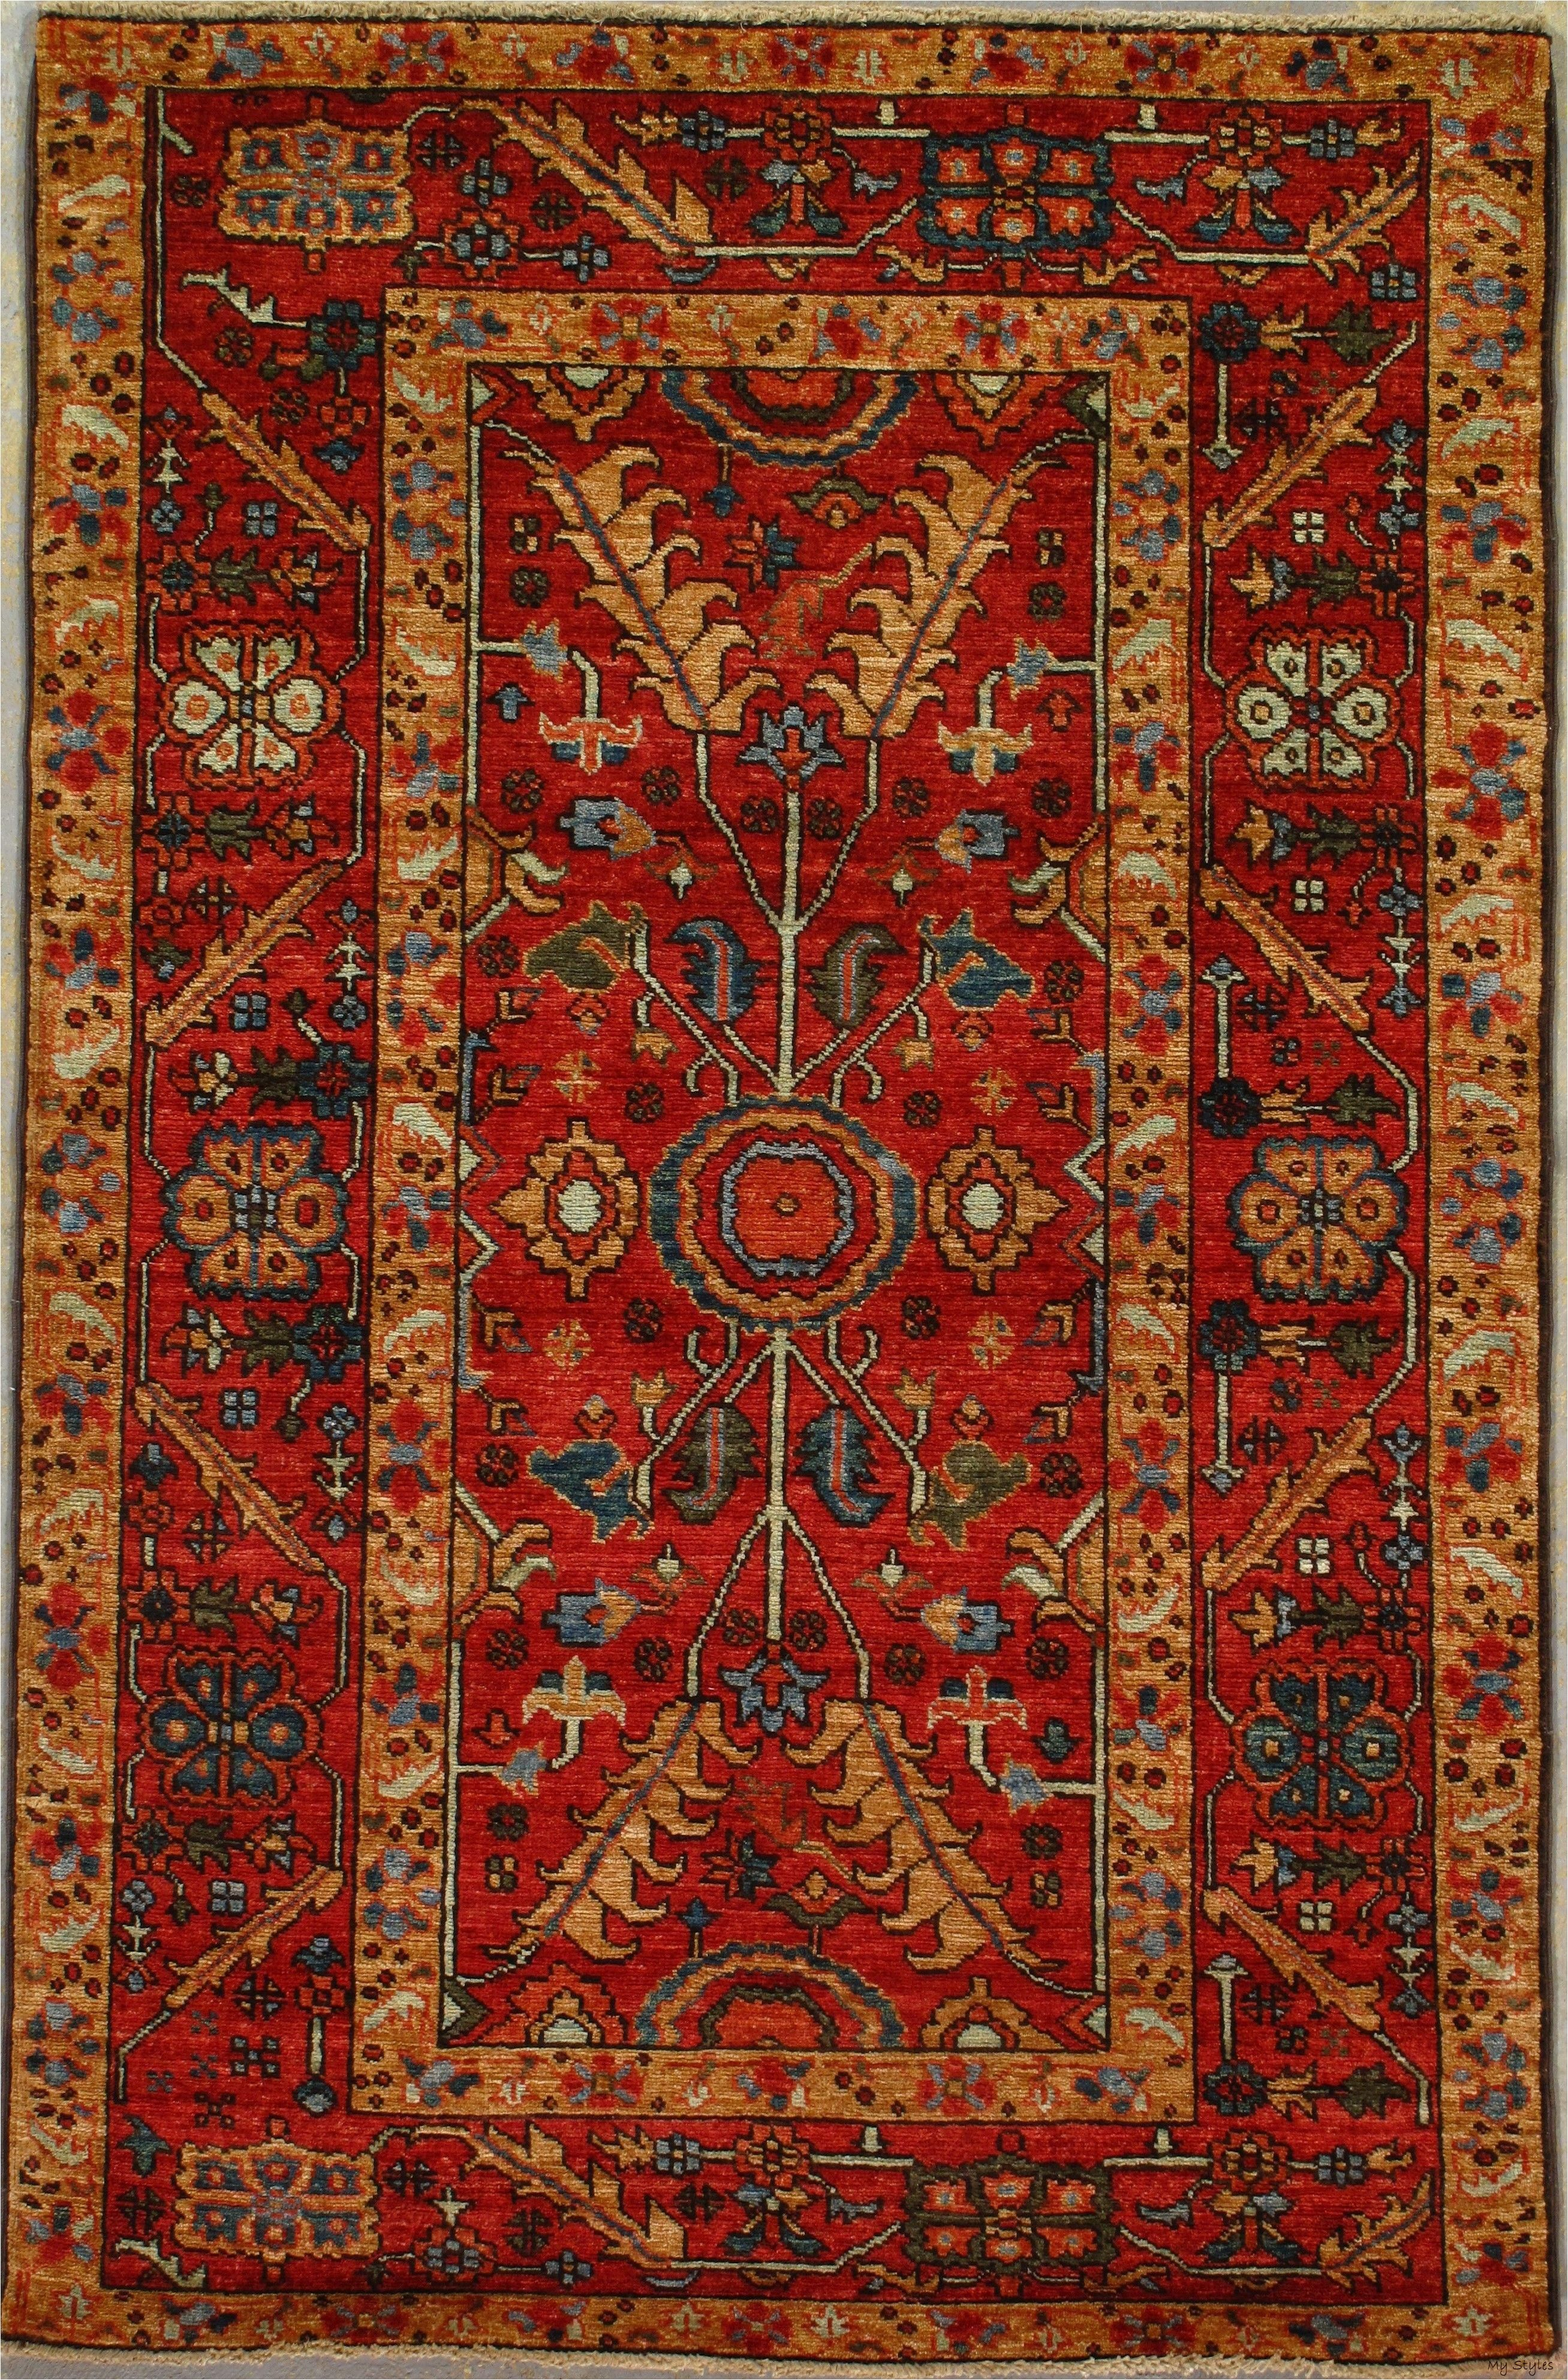 Turkish Rug Small Rug Area Red Rug Vintage Rug Handknotted Etsy In 2020 Antique Carpets Rugs On Carpet Antique Rugs